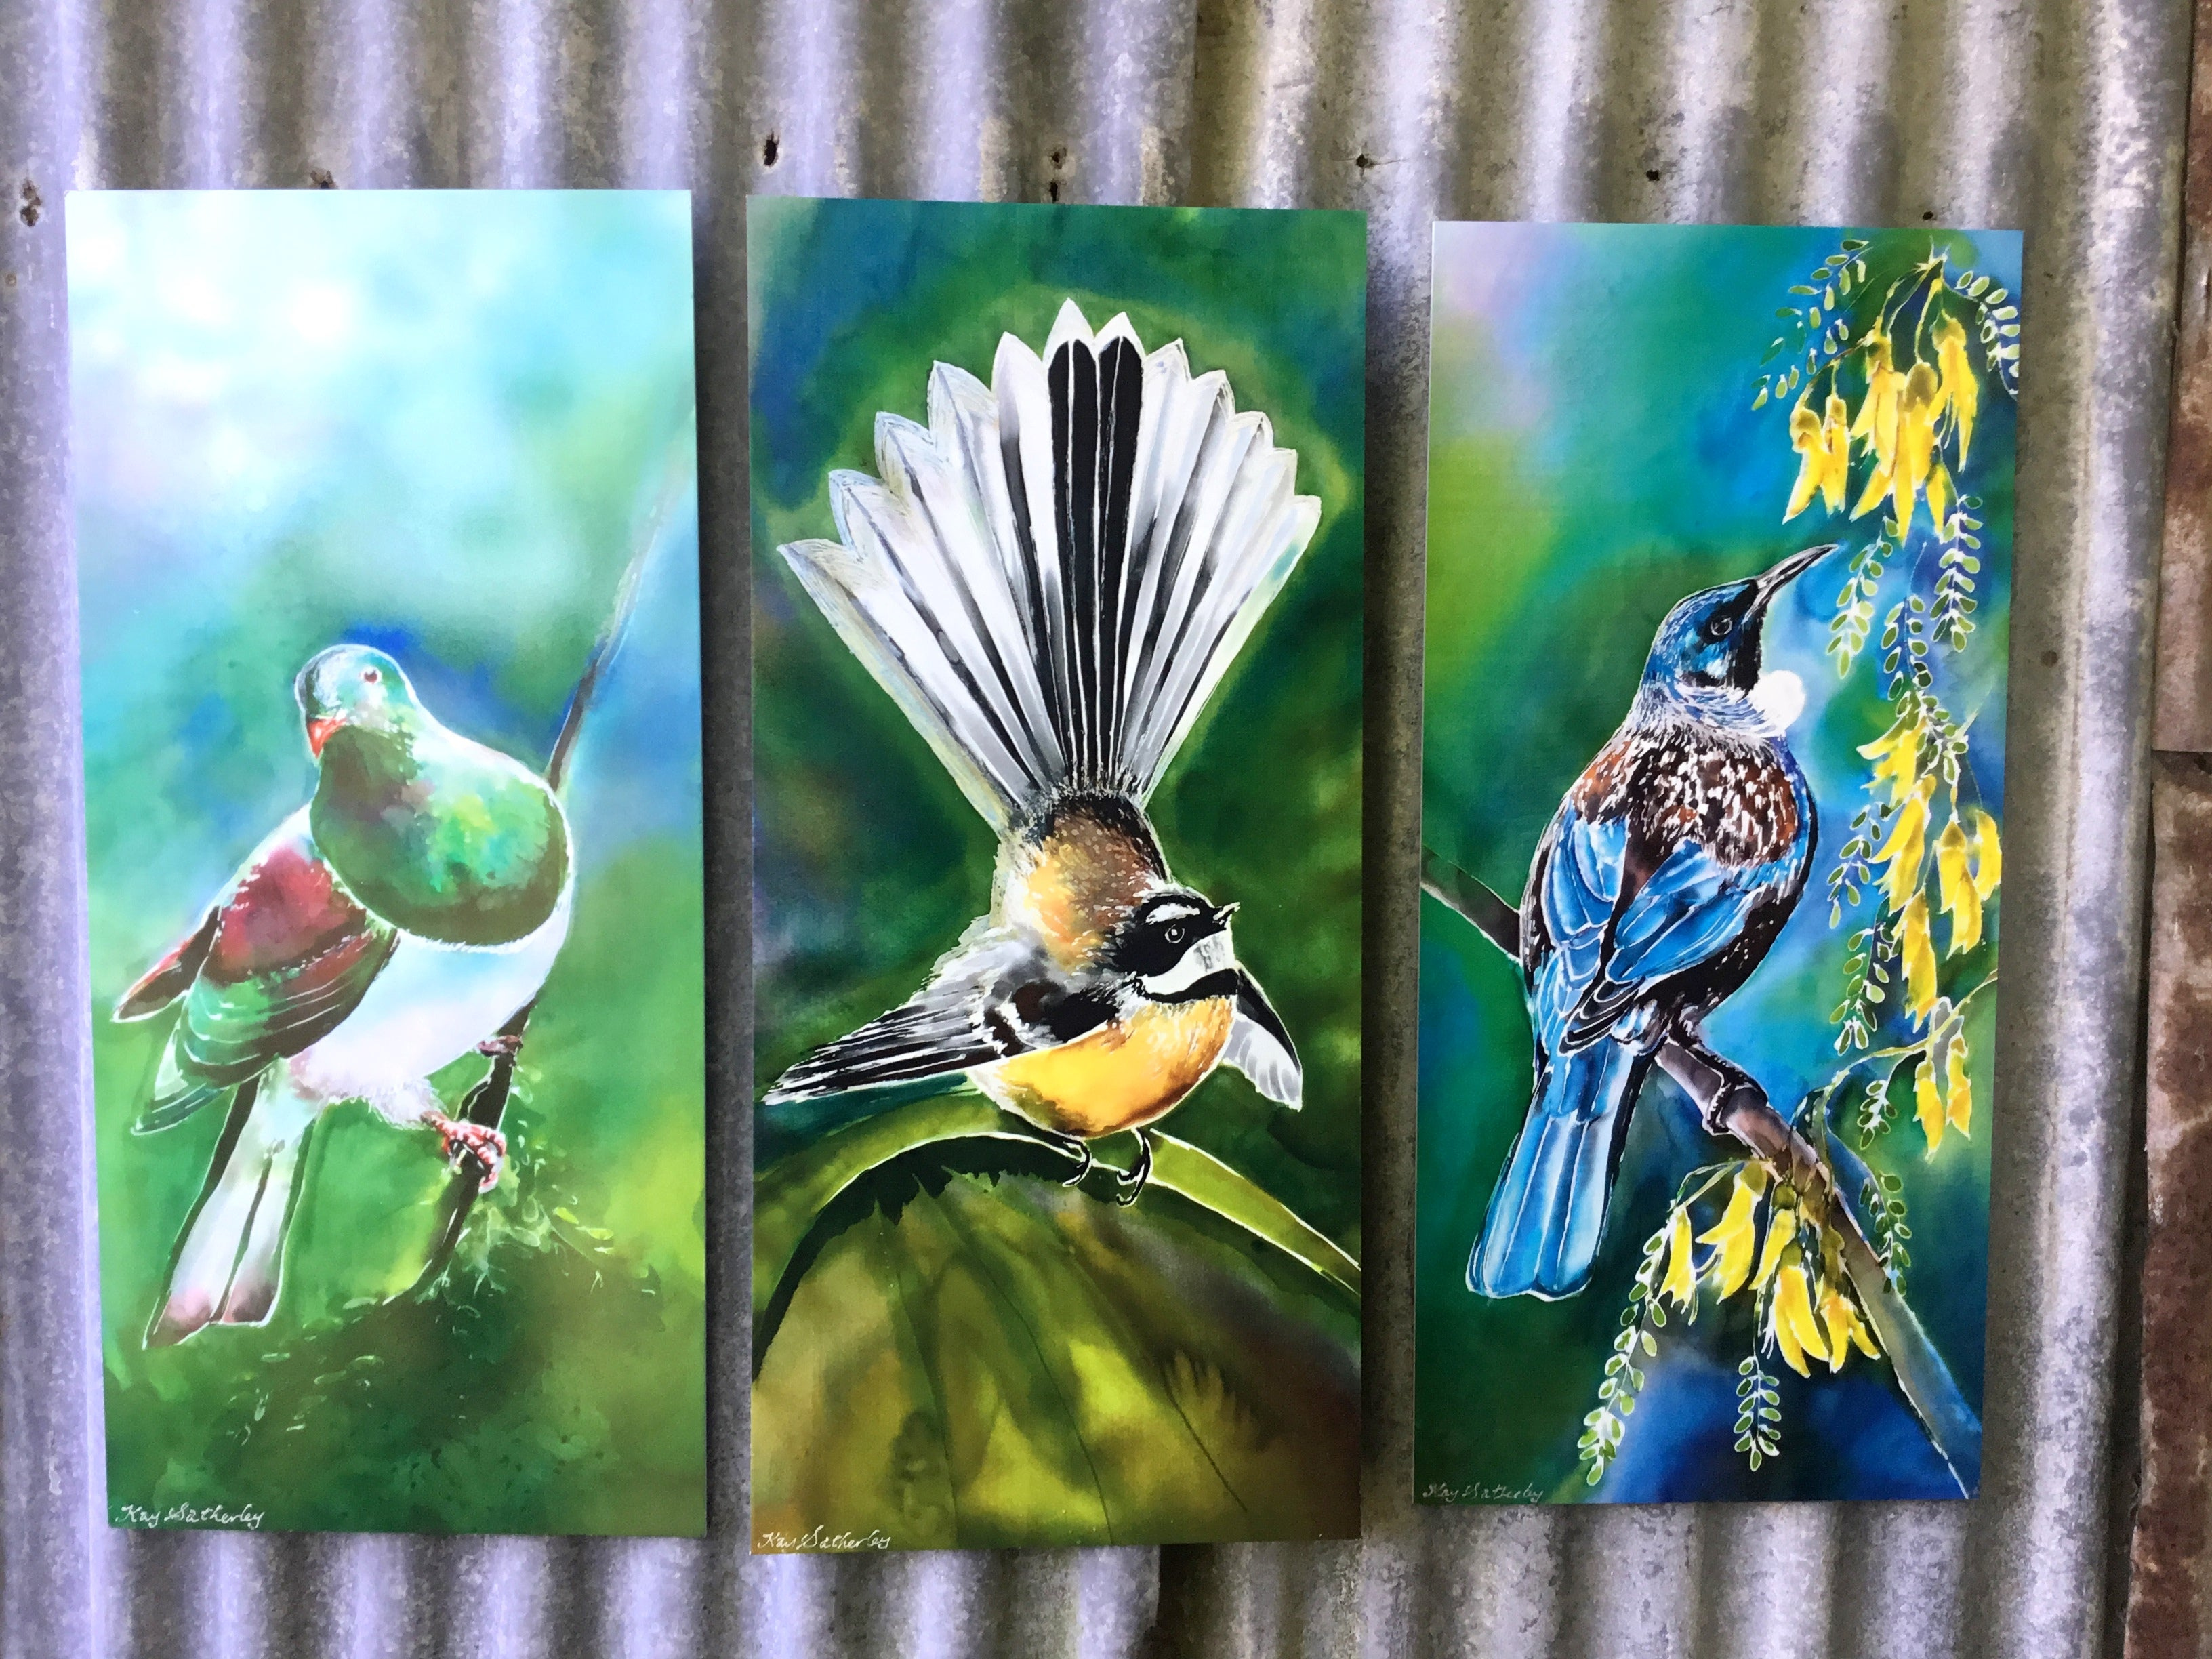 Special: A Trio of Tui/Kowhai, Kereru & Fantail - Outdoor Garden Art Panel - Satherley Silks NZ